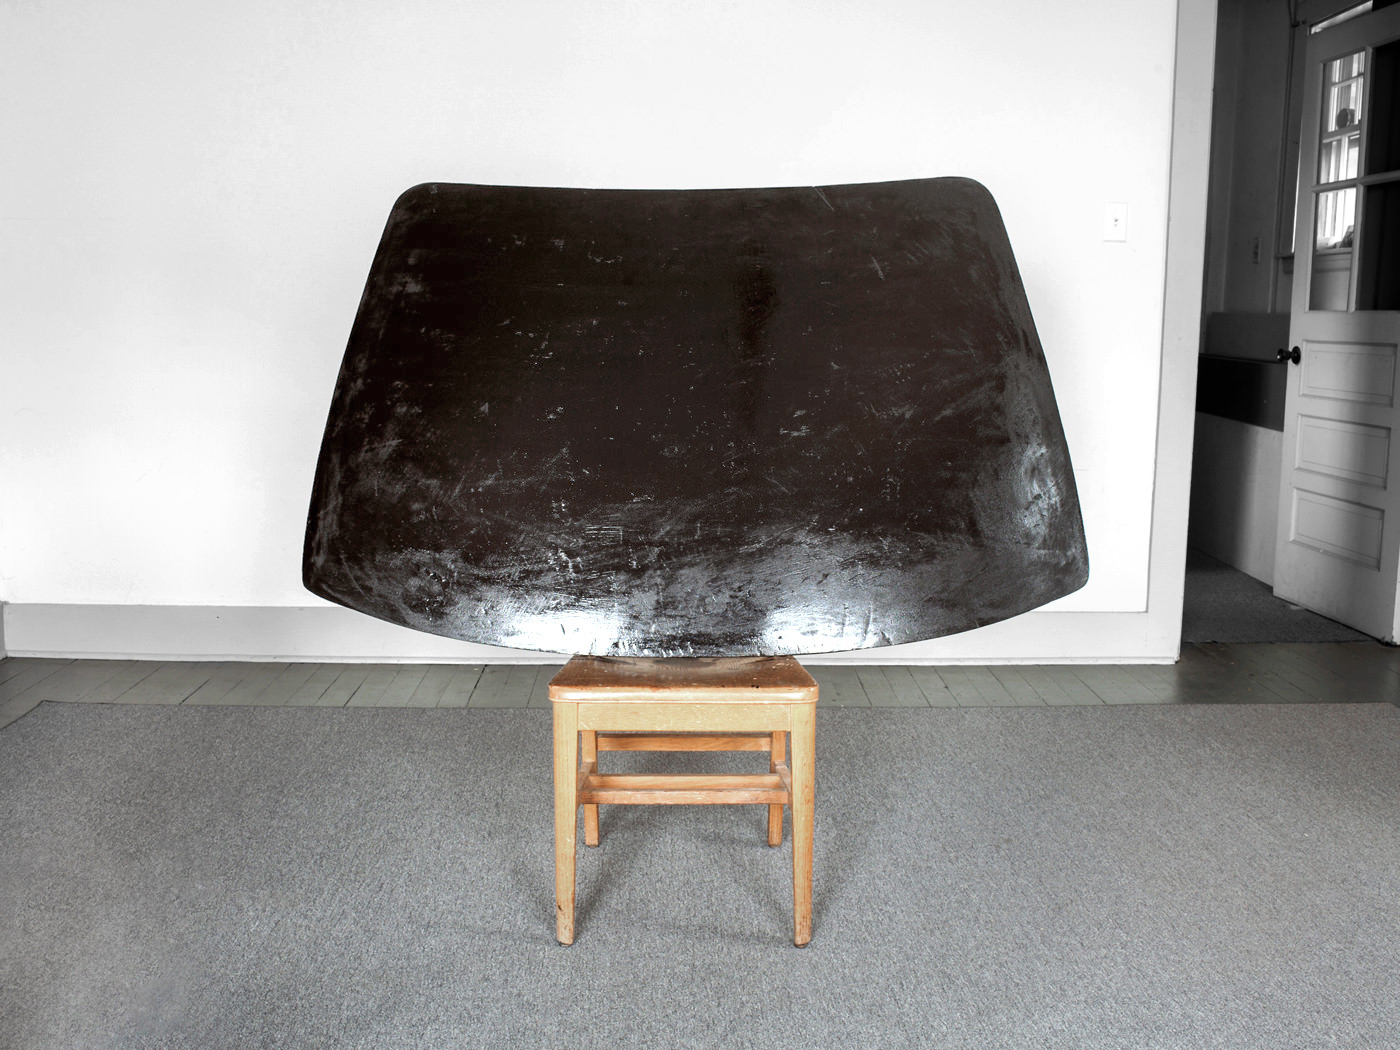 Umber Windshield / Carved & Painted Wood with Chair. 2012.